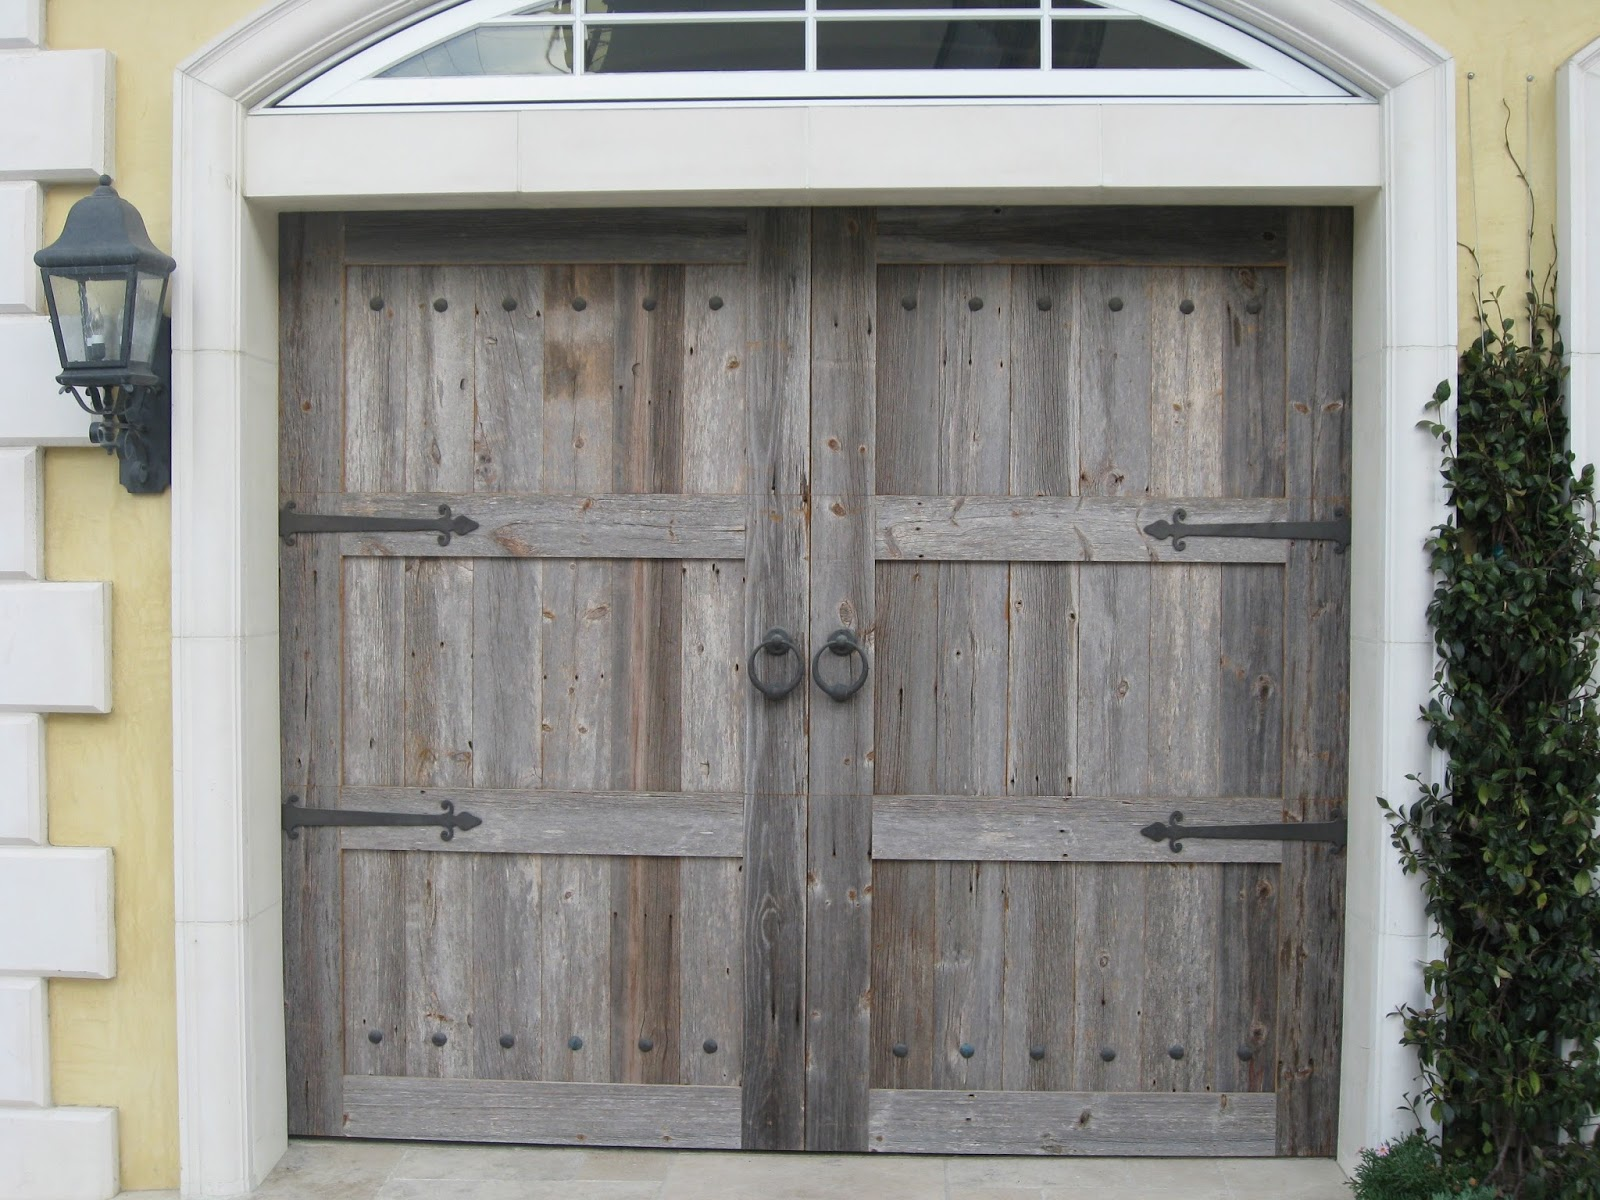 Romancing the home romancing the garage door another garage door made by the artisans that are making our door reclaimed barn wood rubansaba